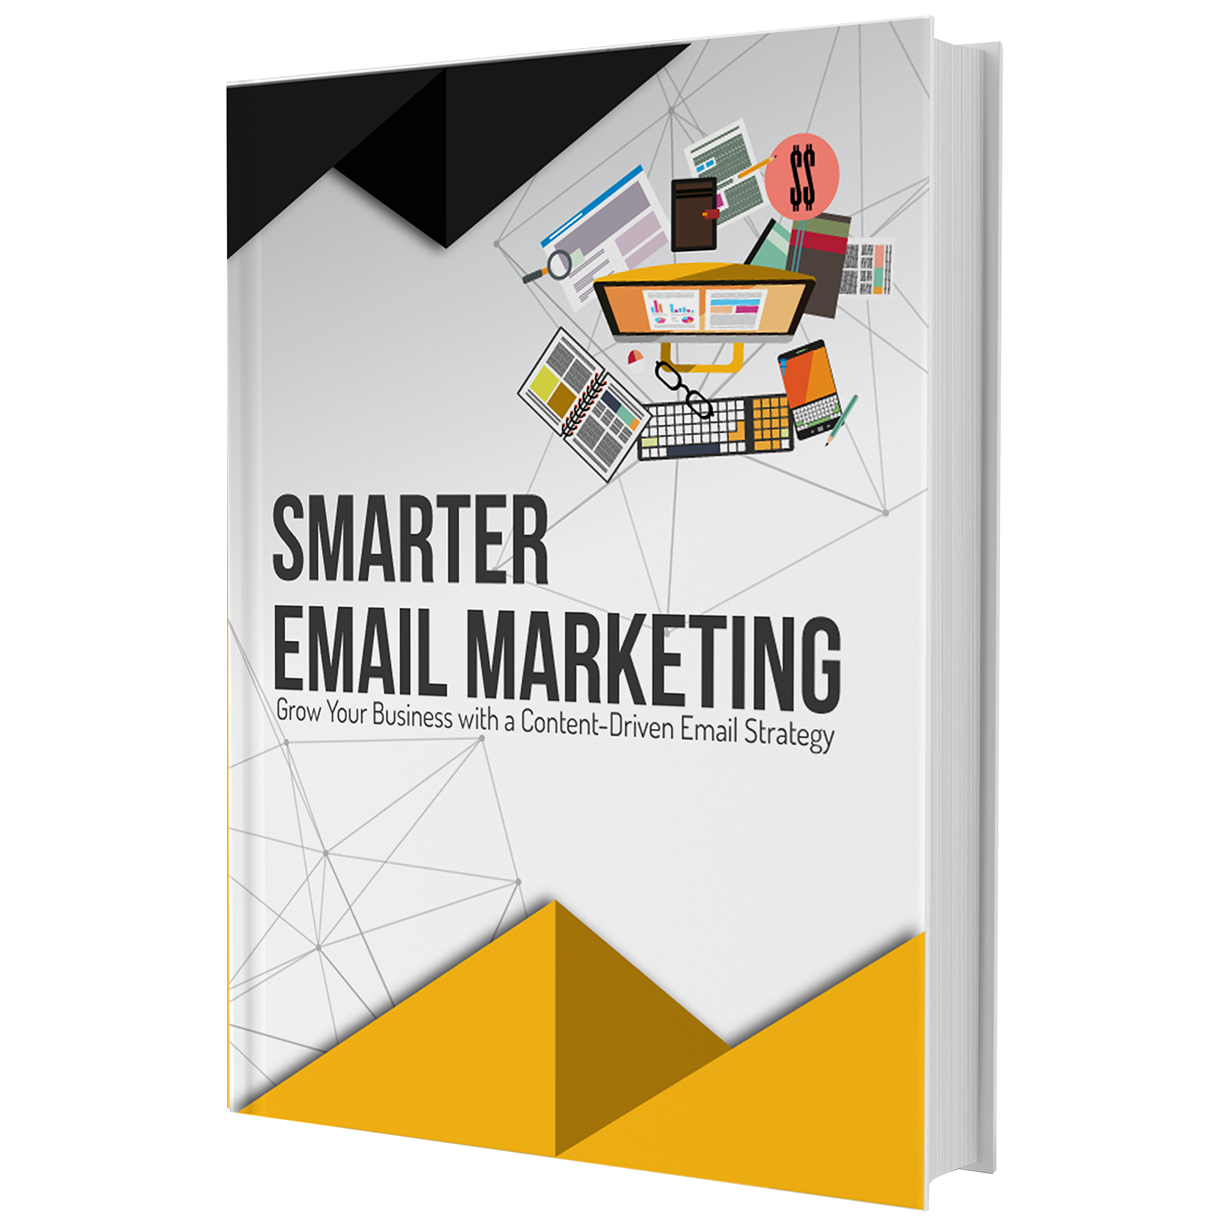 smarter-email-marketing-ebook-2.png